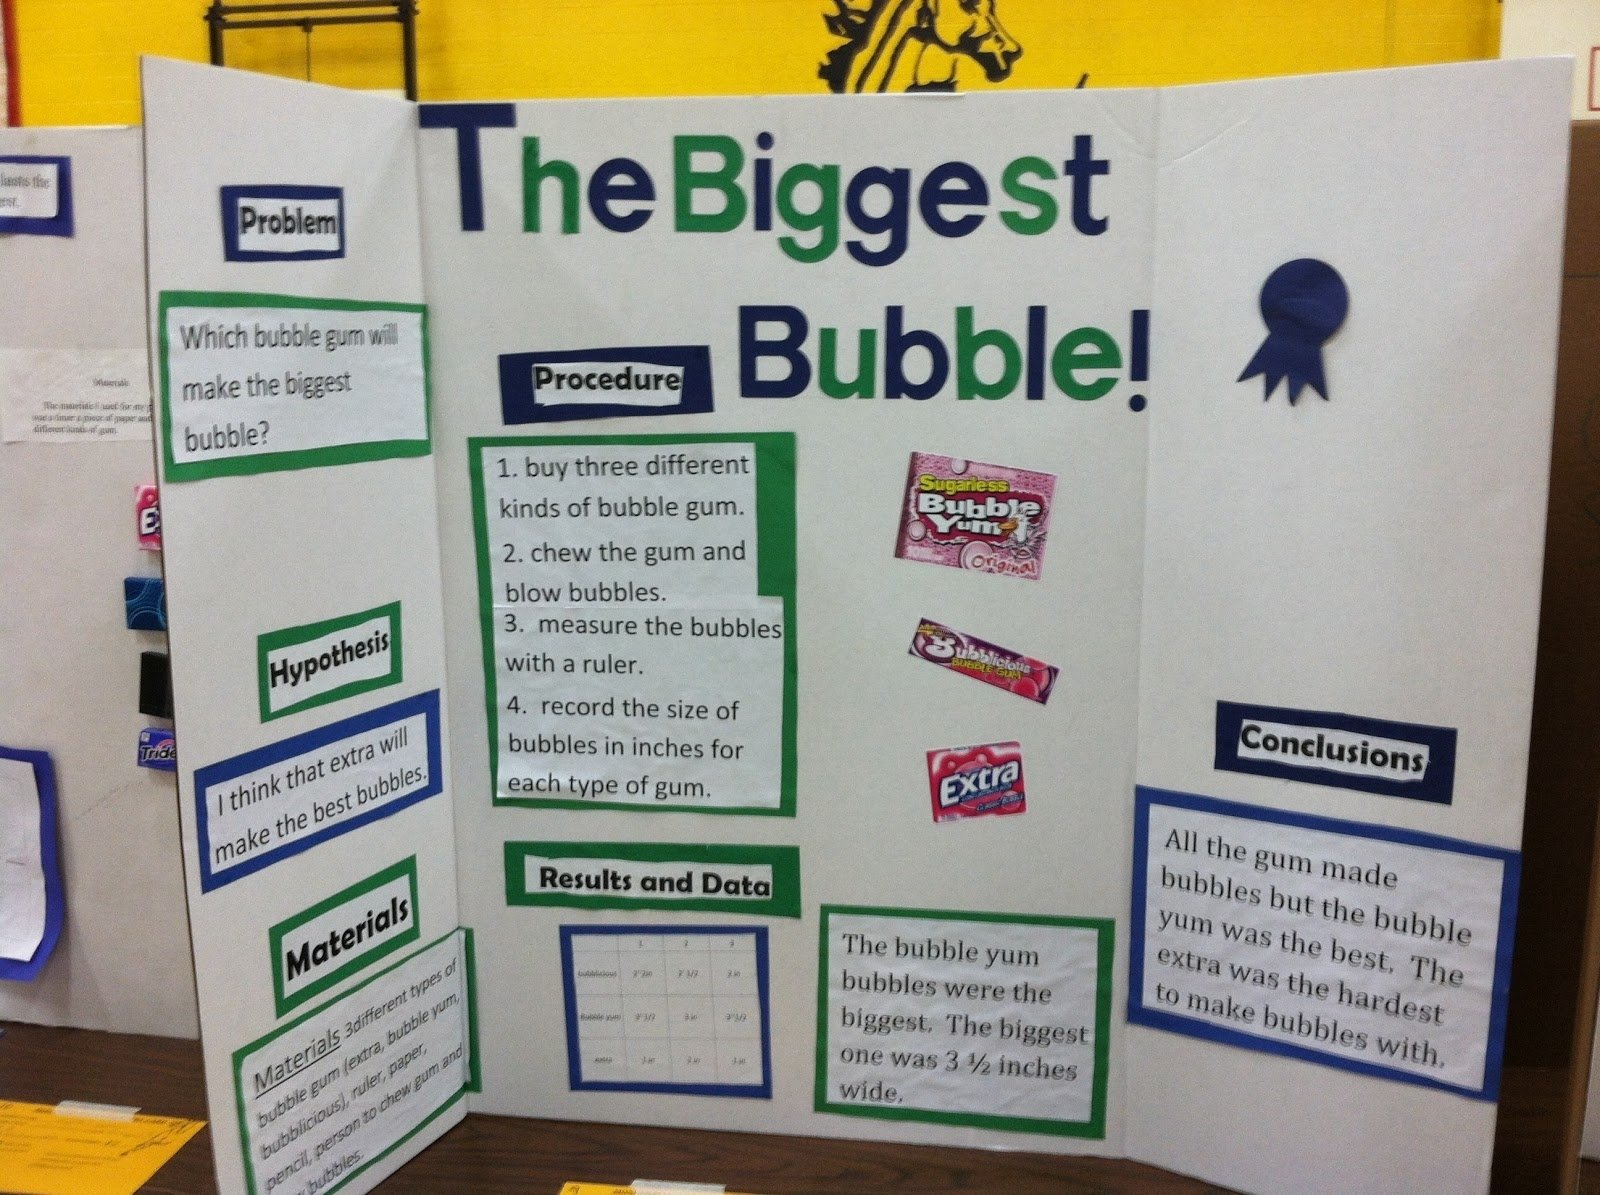 10 Attractive Science Fair Project Ideas For 4Th Grade aviation science fair projects th cav judges wheeler elementary 4 2020